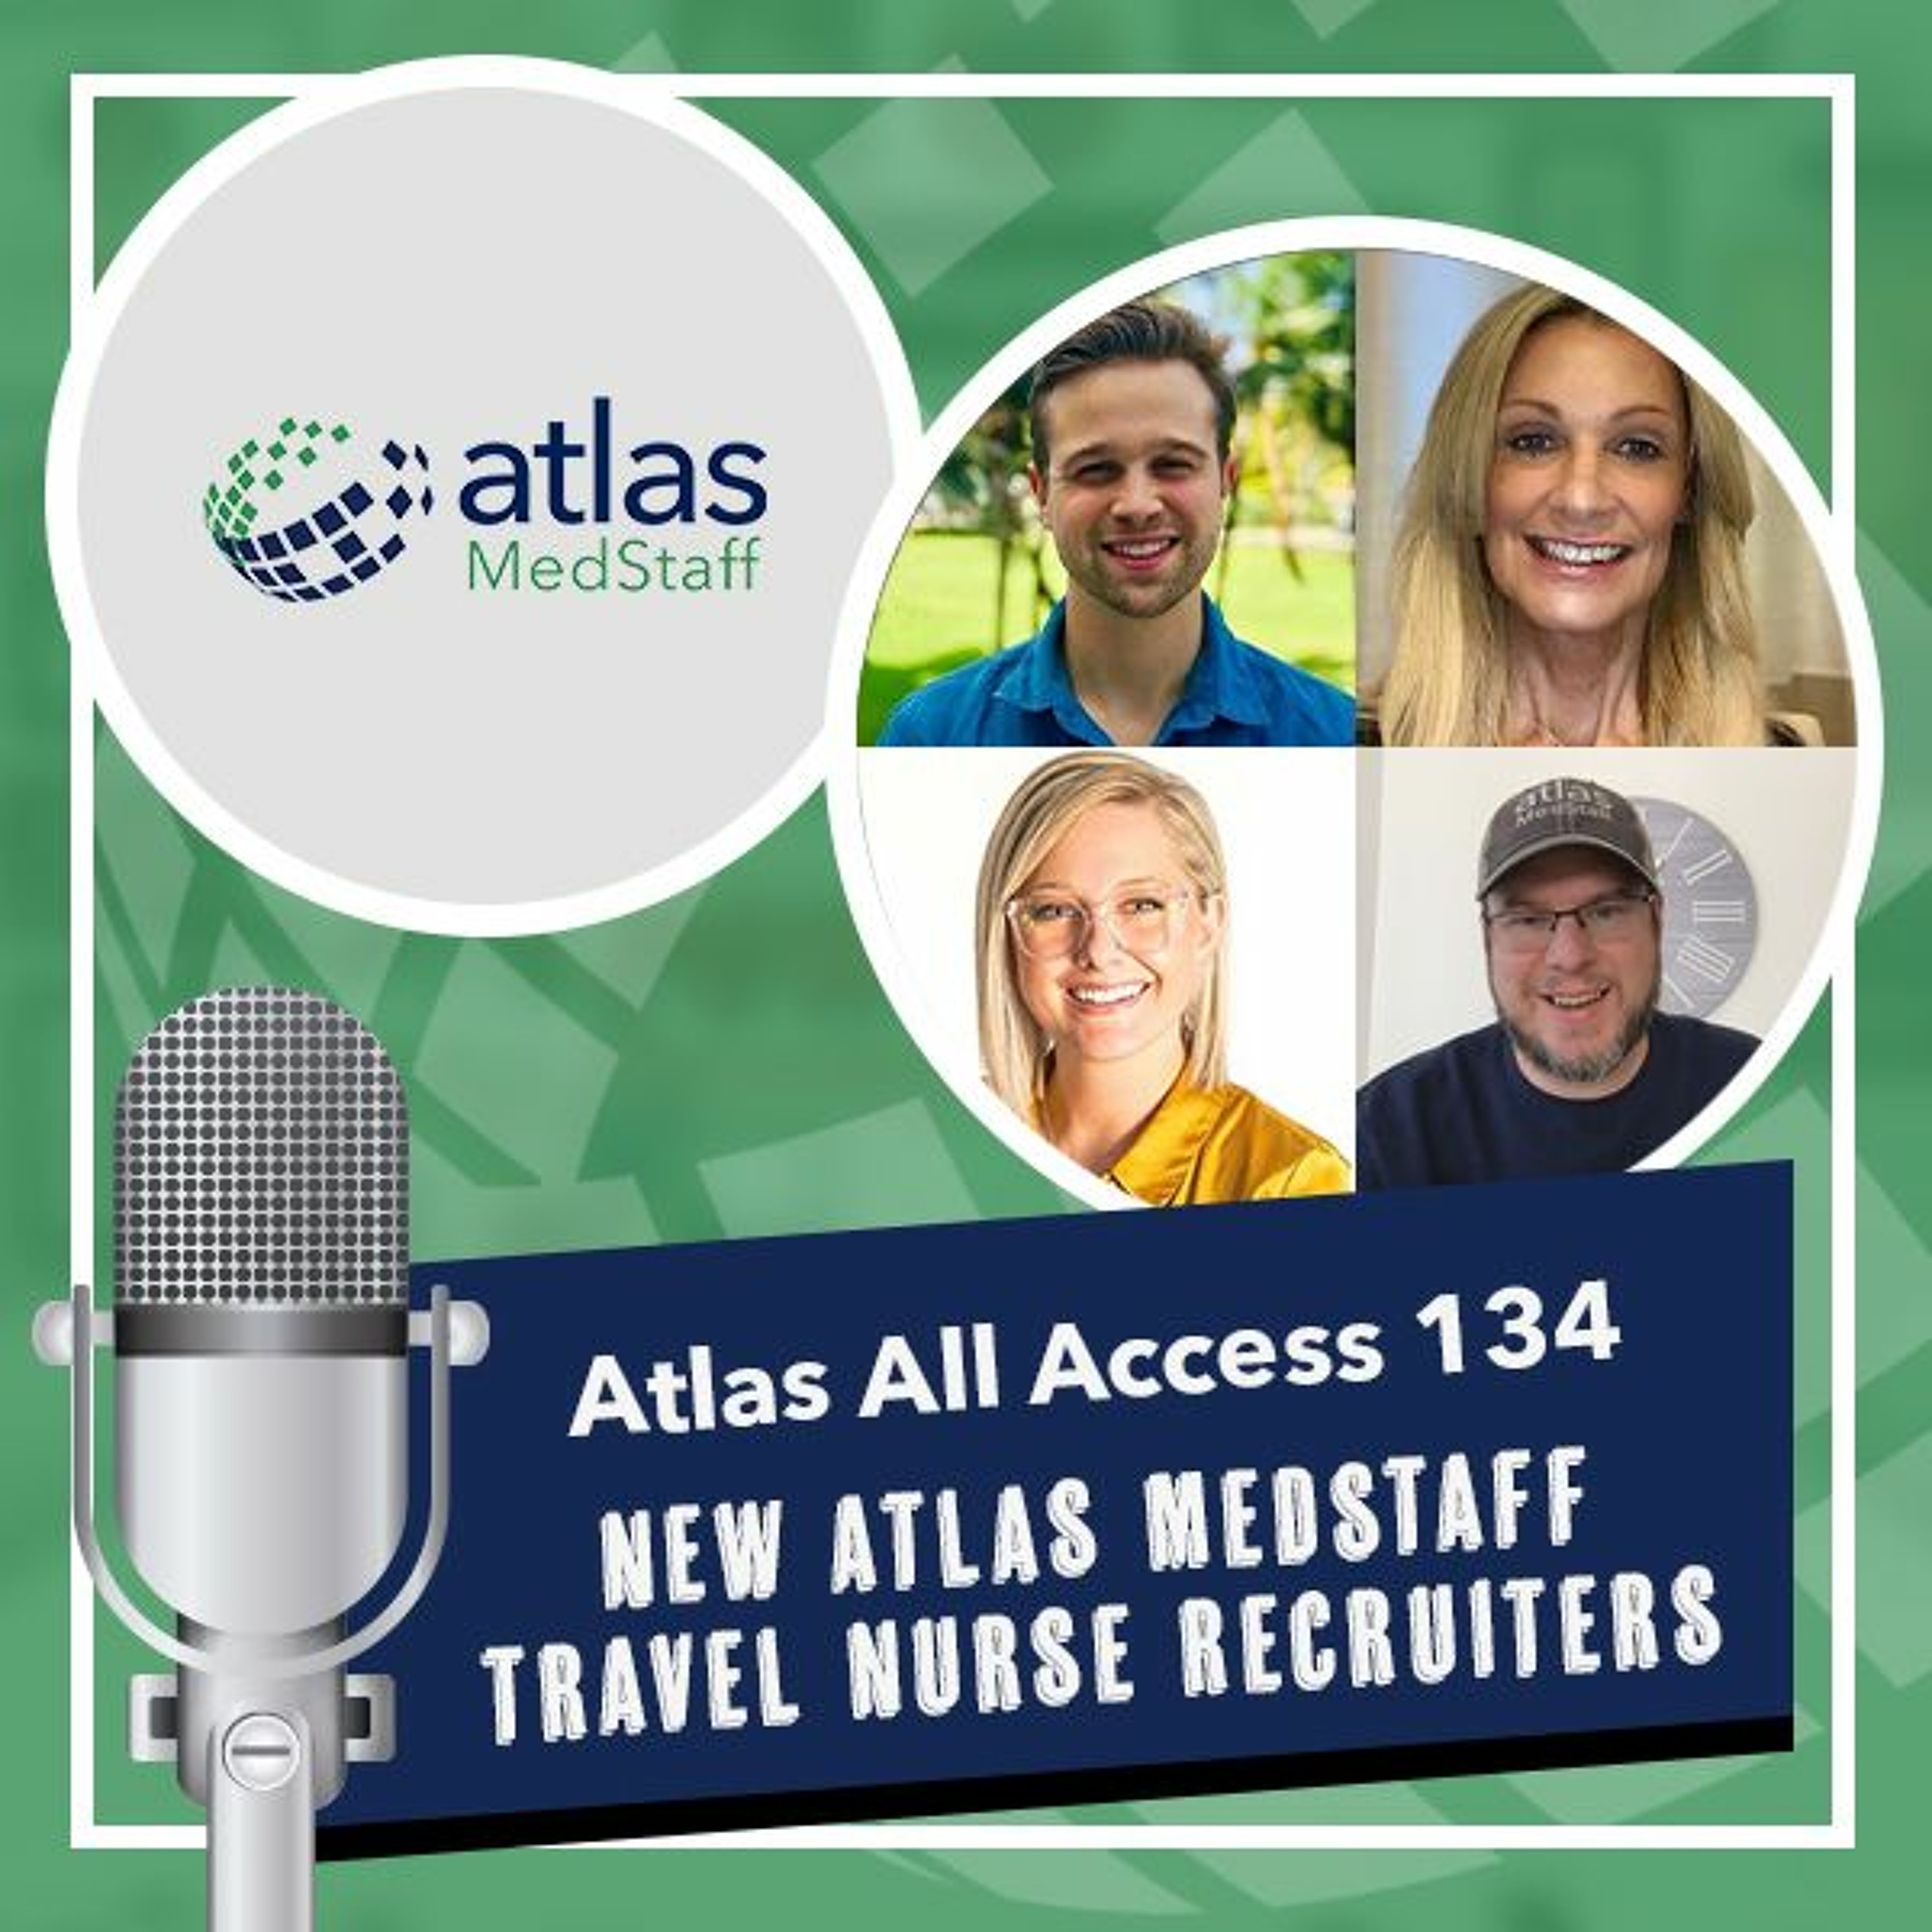 New travel nurse recruiters starting in a pandemic (no pressure) - Atlas All Access 134